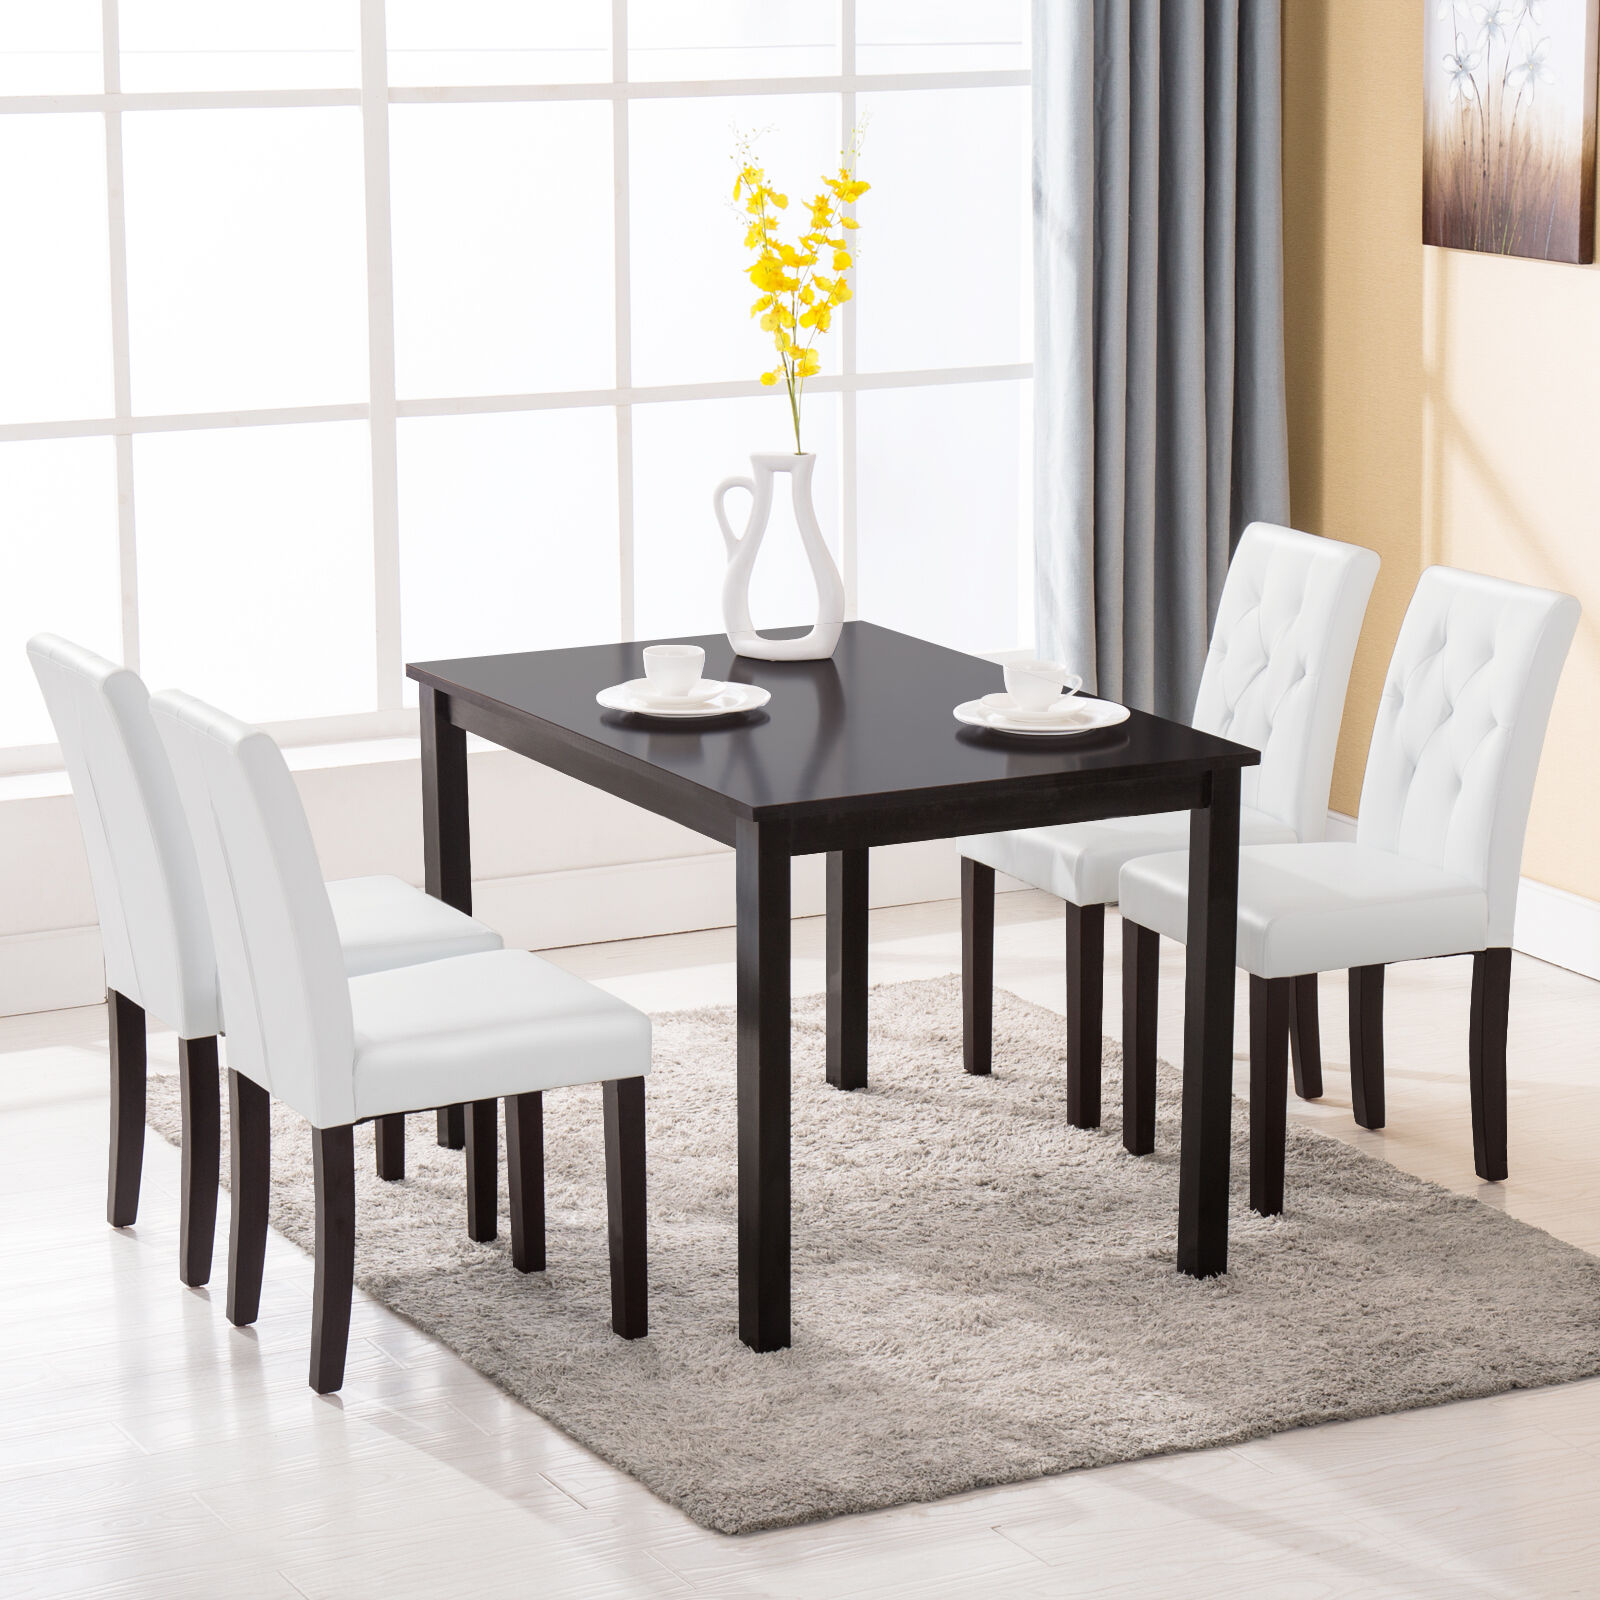 White Leather Dining Room Set: 5 Piece Dining Table Set 4 Chairs Room Kitchen Dinette